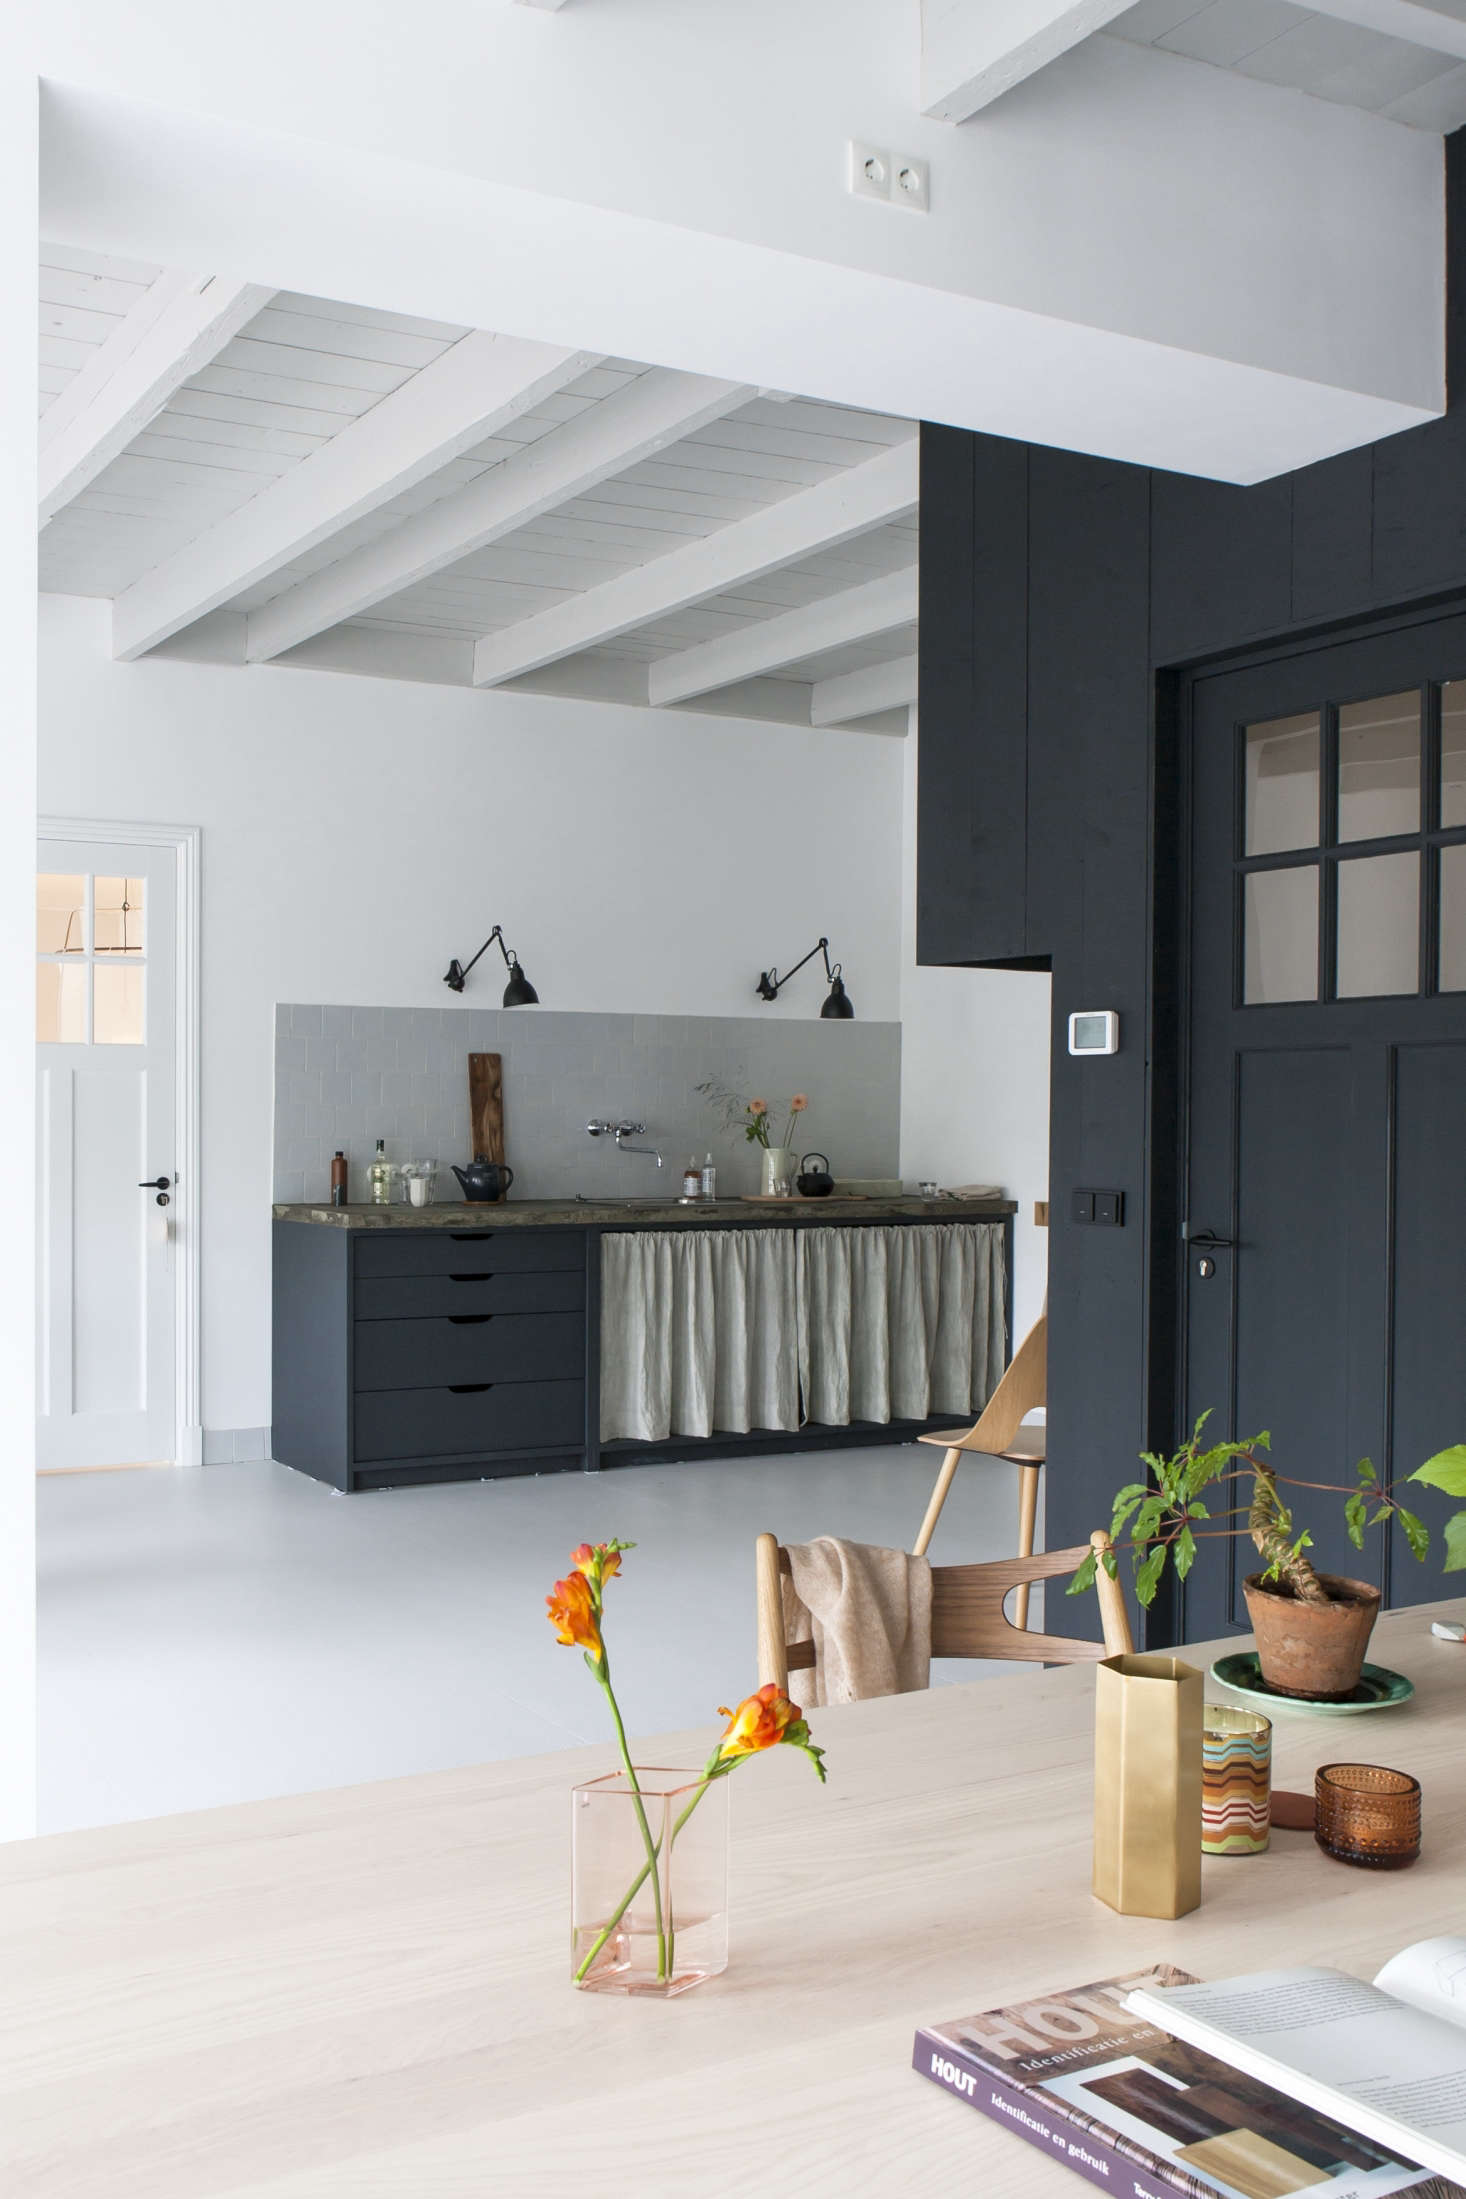 A curtained kitchen with a small tiled backsplash fromKitchen of the Week: The Curtained Kitchen, Dutch Modern Edition.